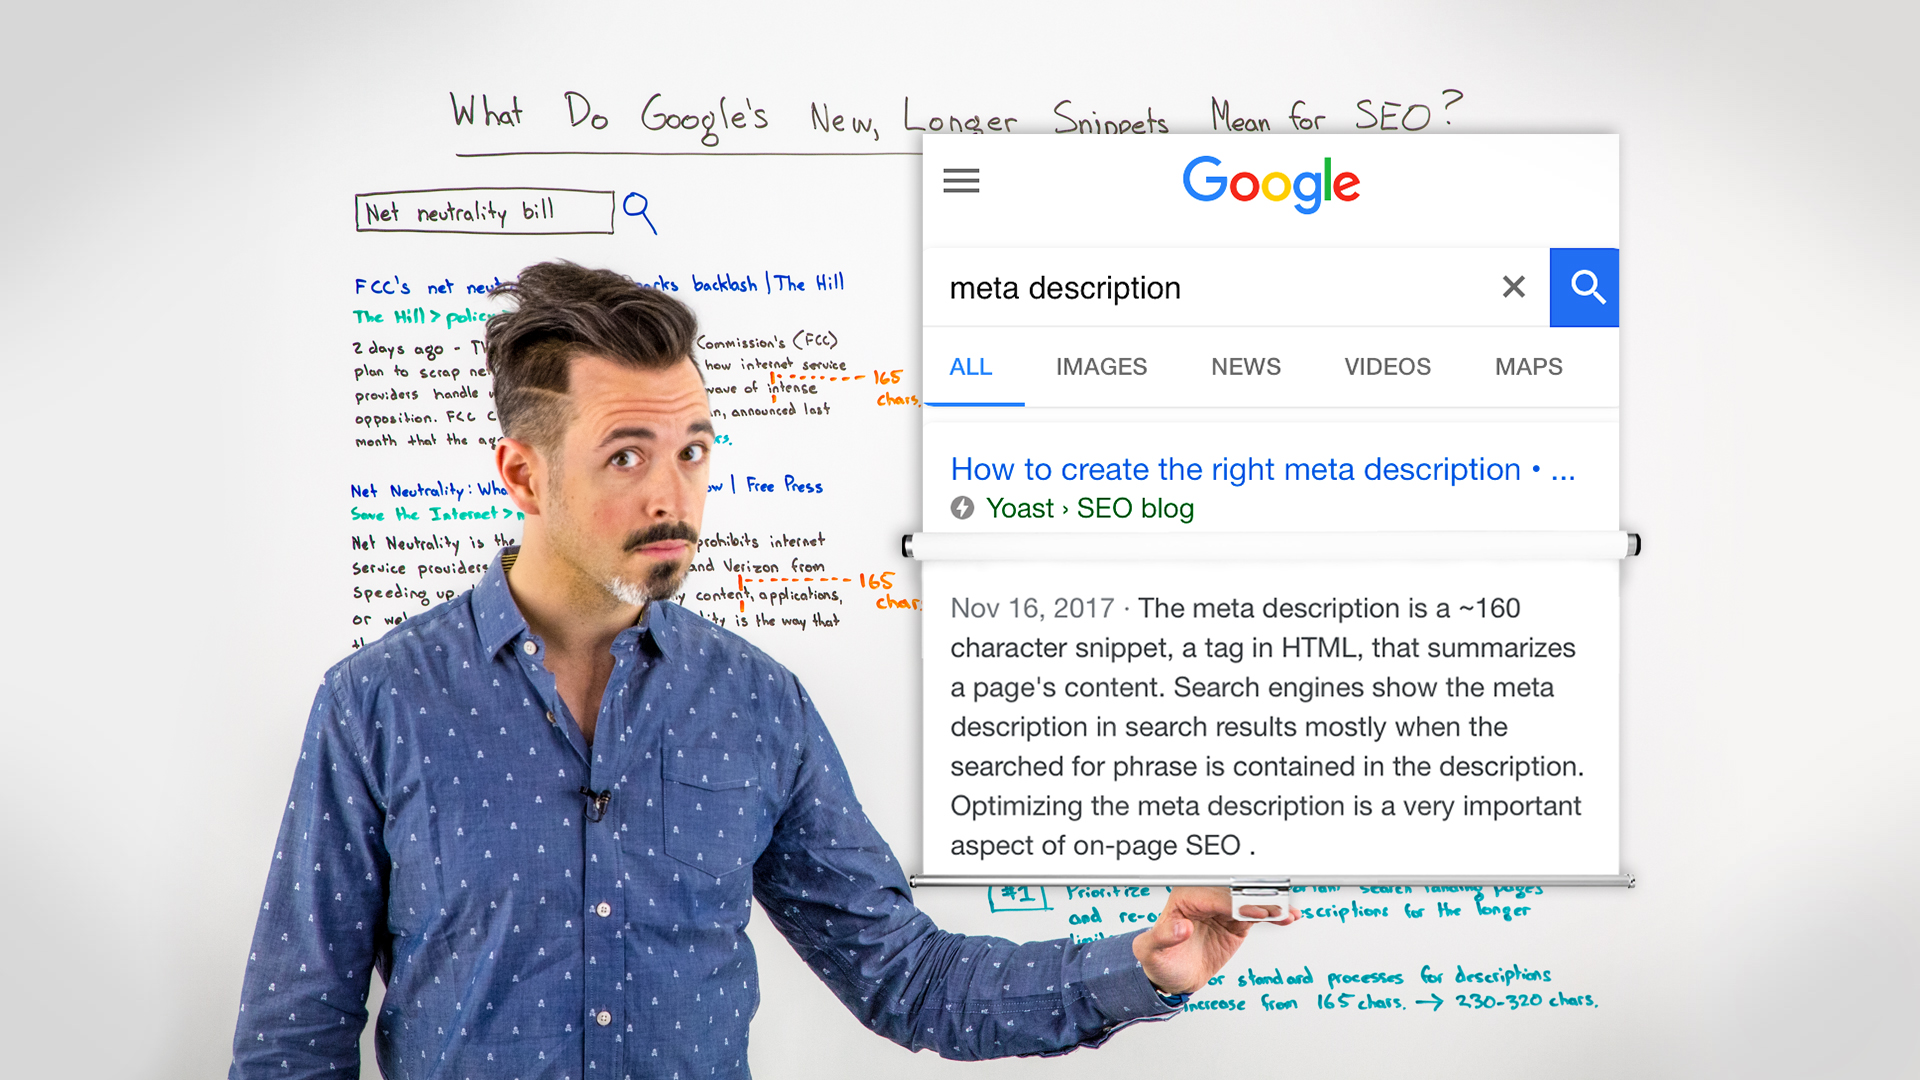 What Do Google's New, Longer Snippets Mean for SEO? – Whiteboard Friday – Moz